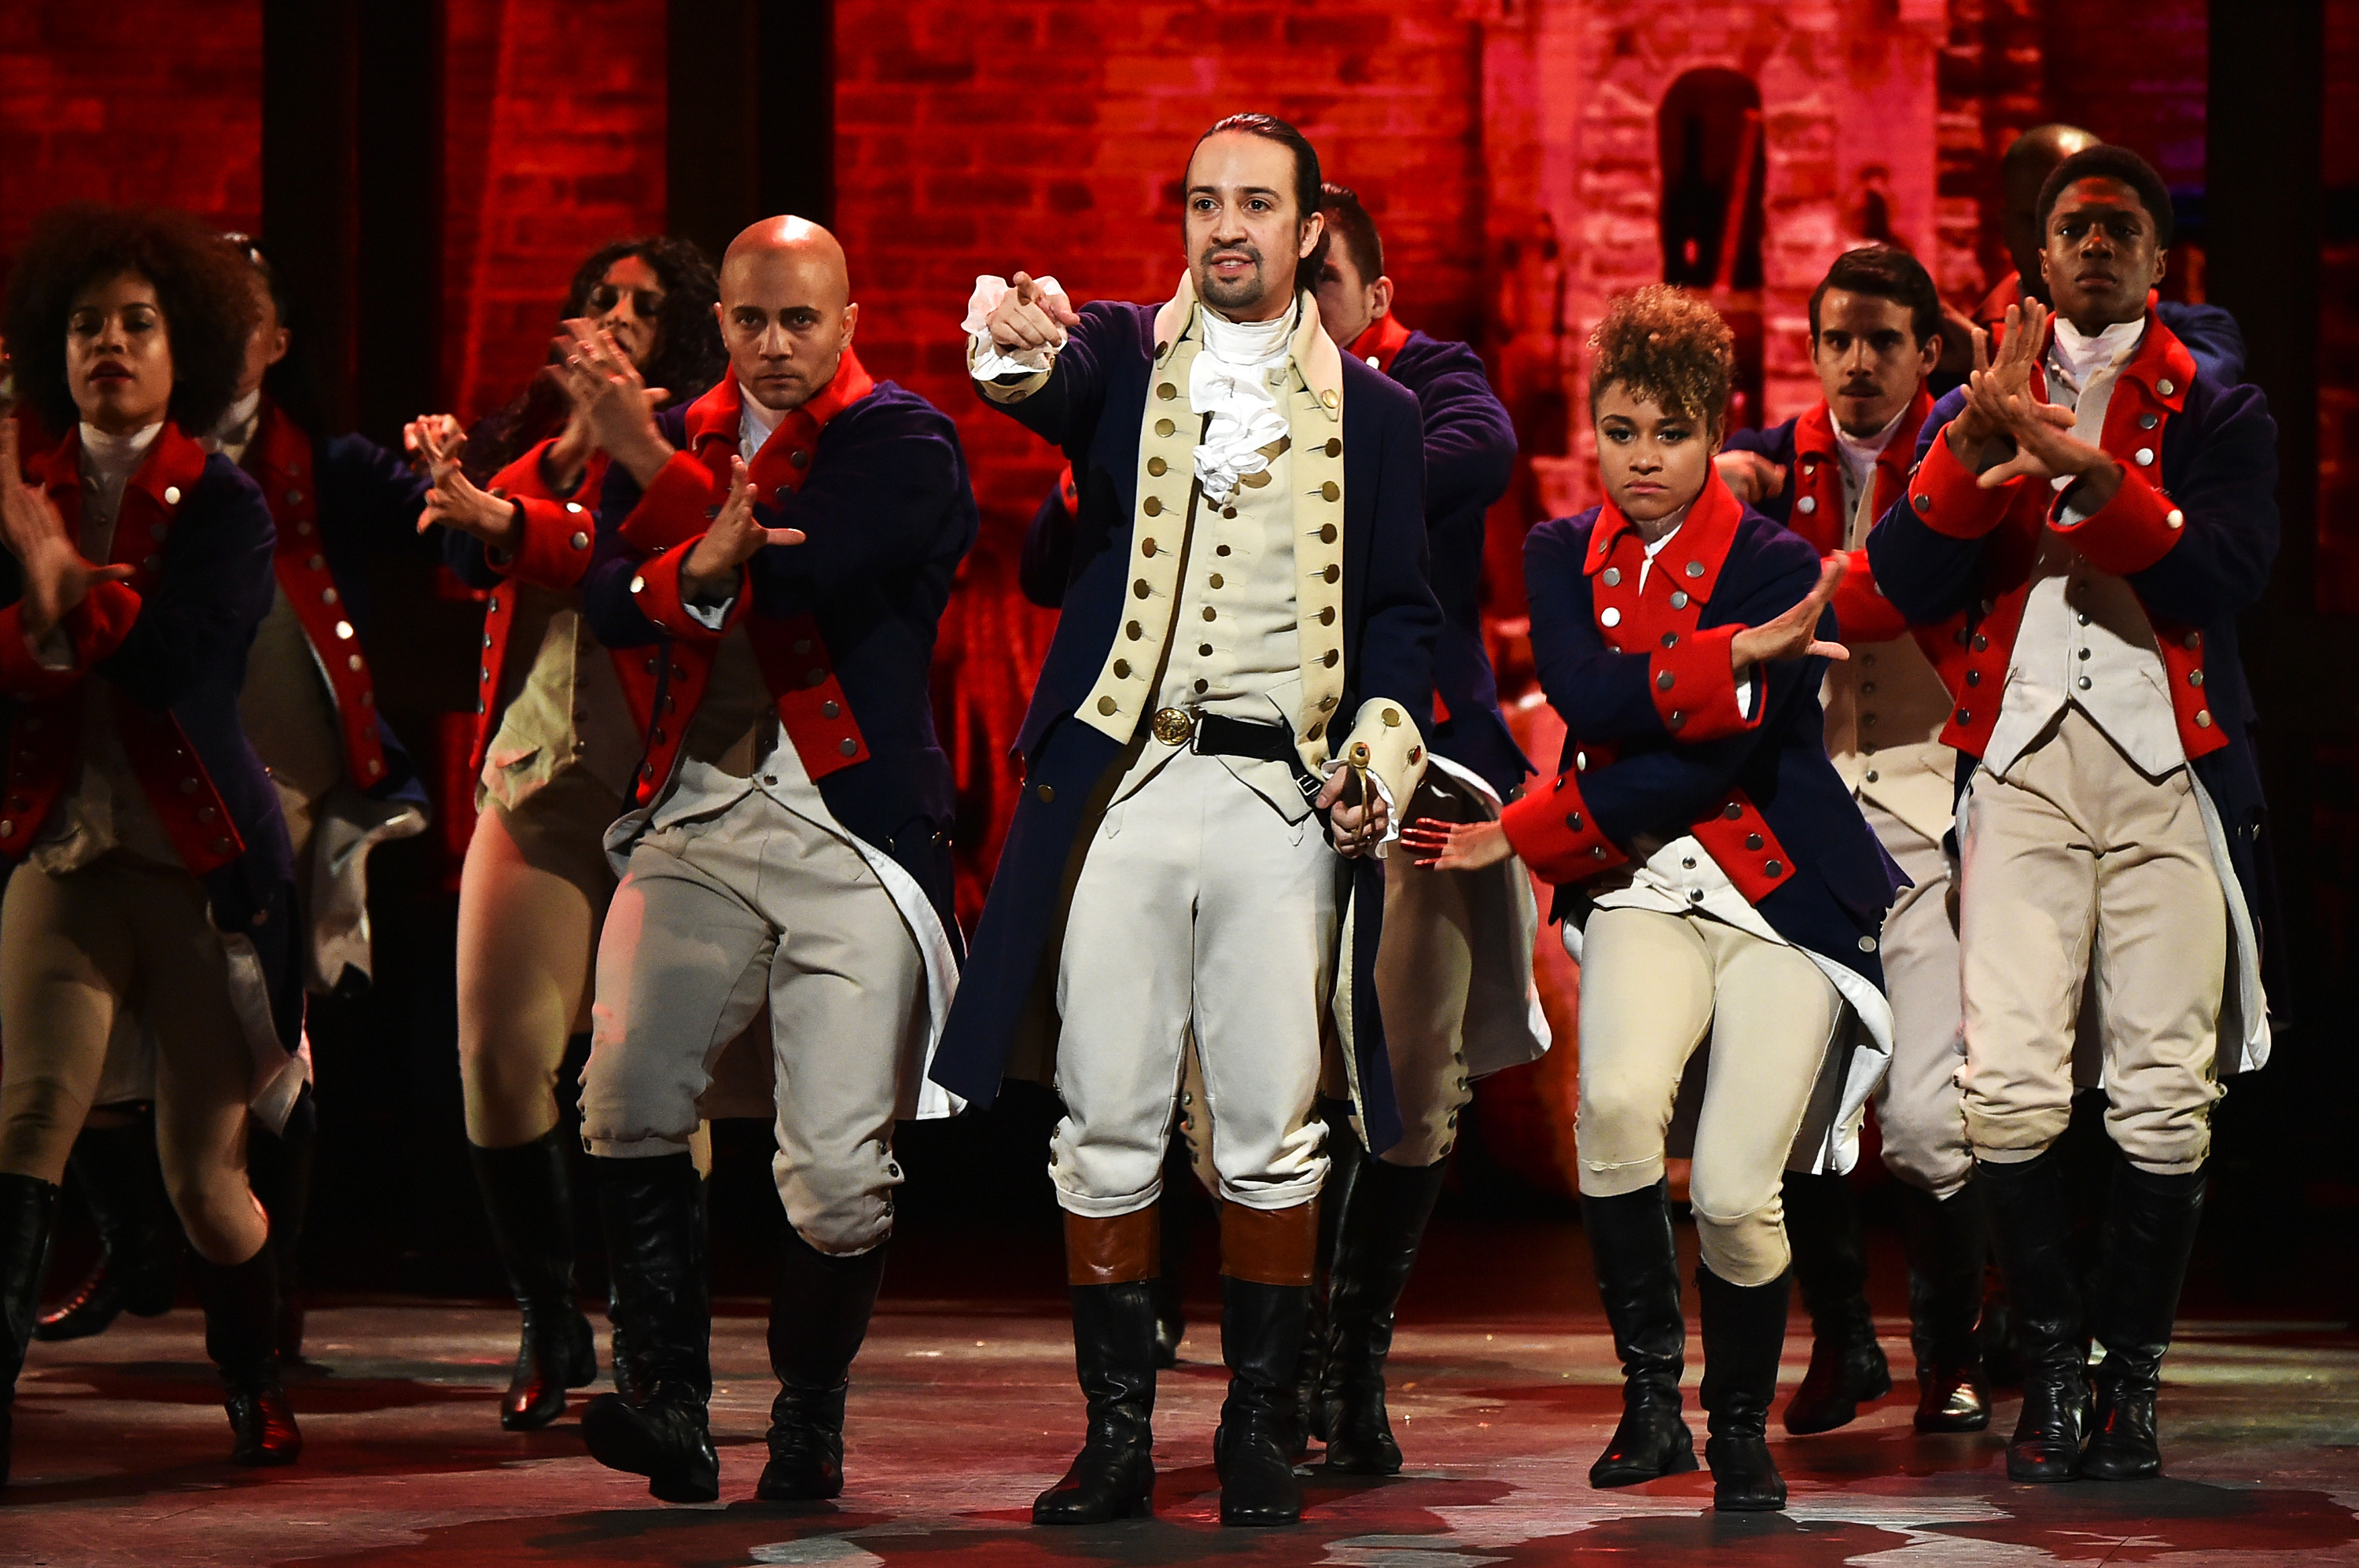 Lin-Manuel Miranda and the cast of 'Hamilton' perform onstage during the 70th Annual Tony Awards at The Beacon Theatre in New York City, June 12, 2016.